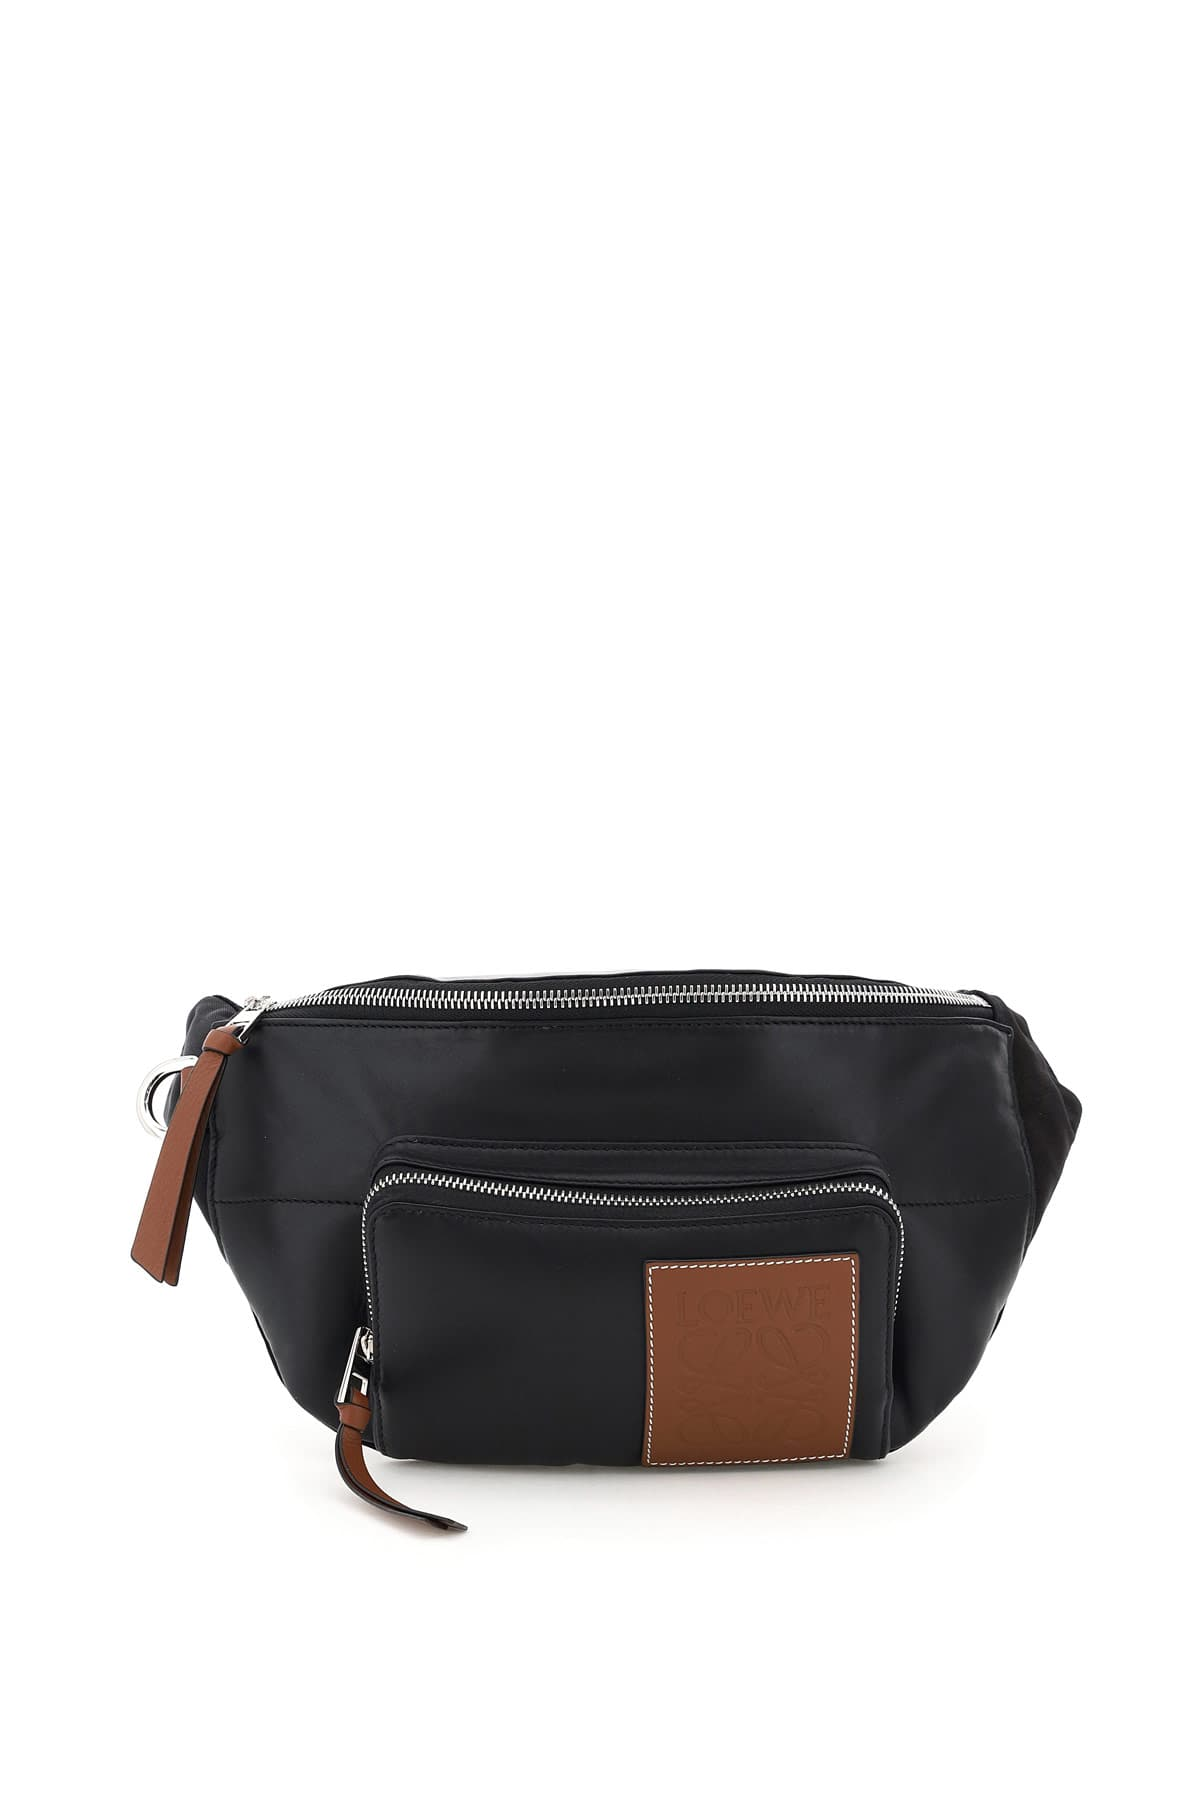 LOEWE PUFFY BELT BAG IN NAPPA AND FABRIC OS Black, Brown Leather, Technical